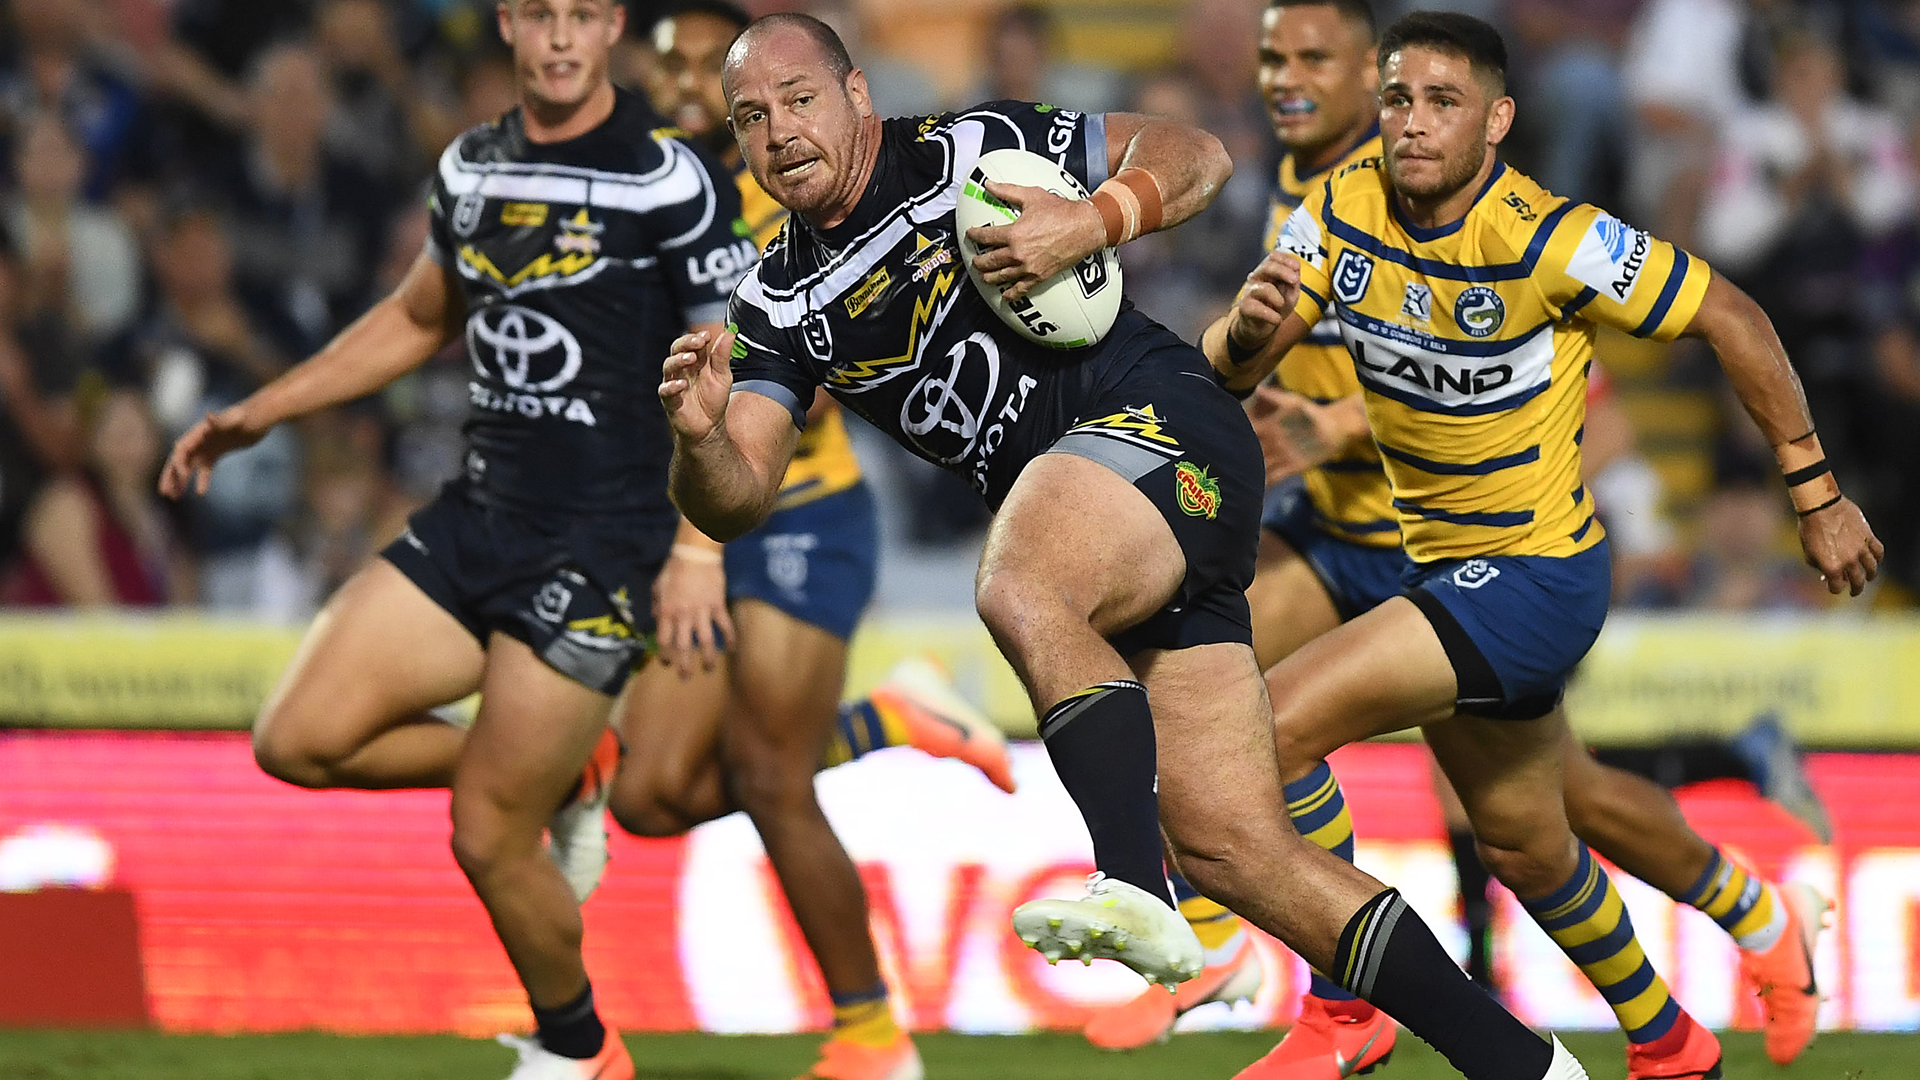 Matt Scott will retire at the end of the season after 16 NRL campaigns with the North Queensland Cowboys.